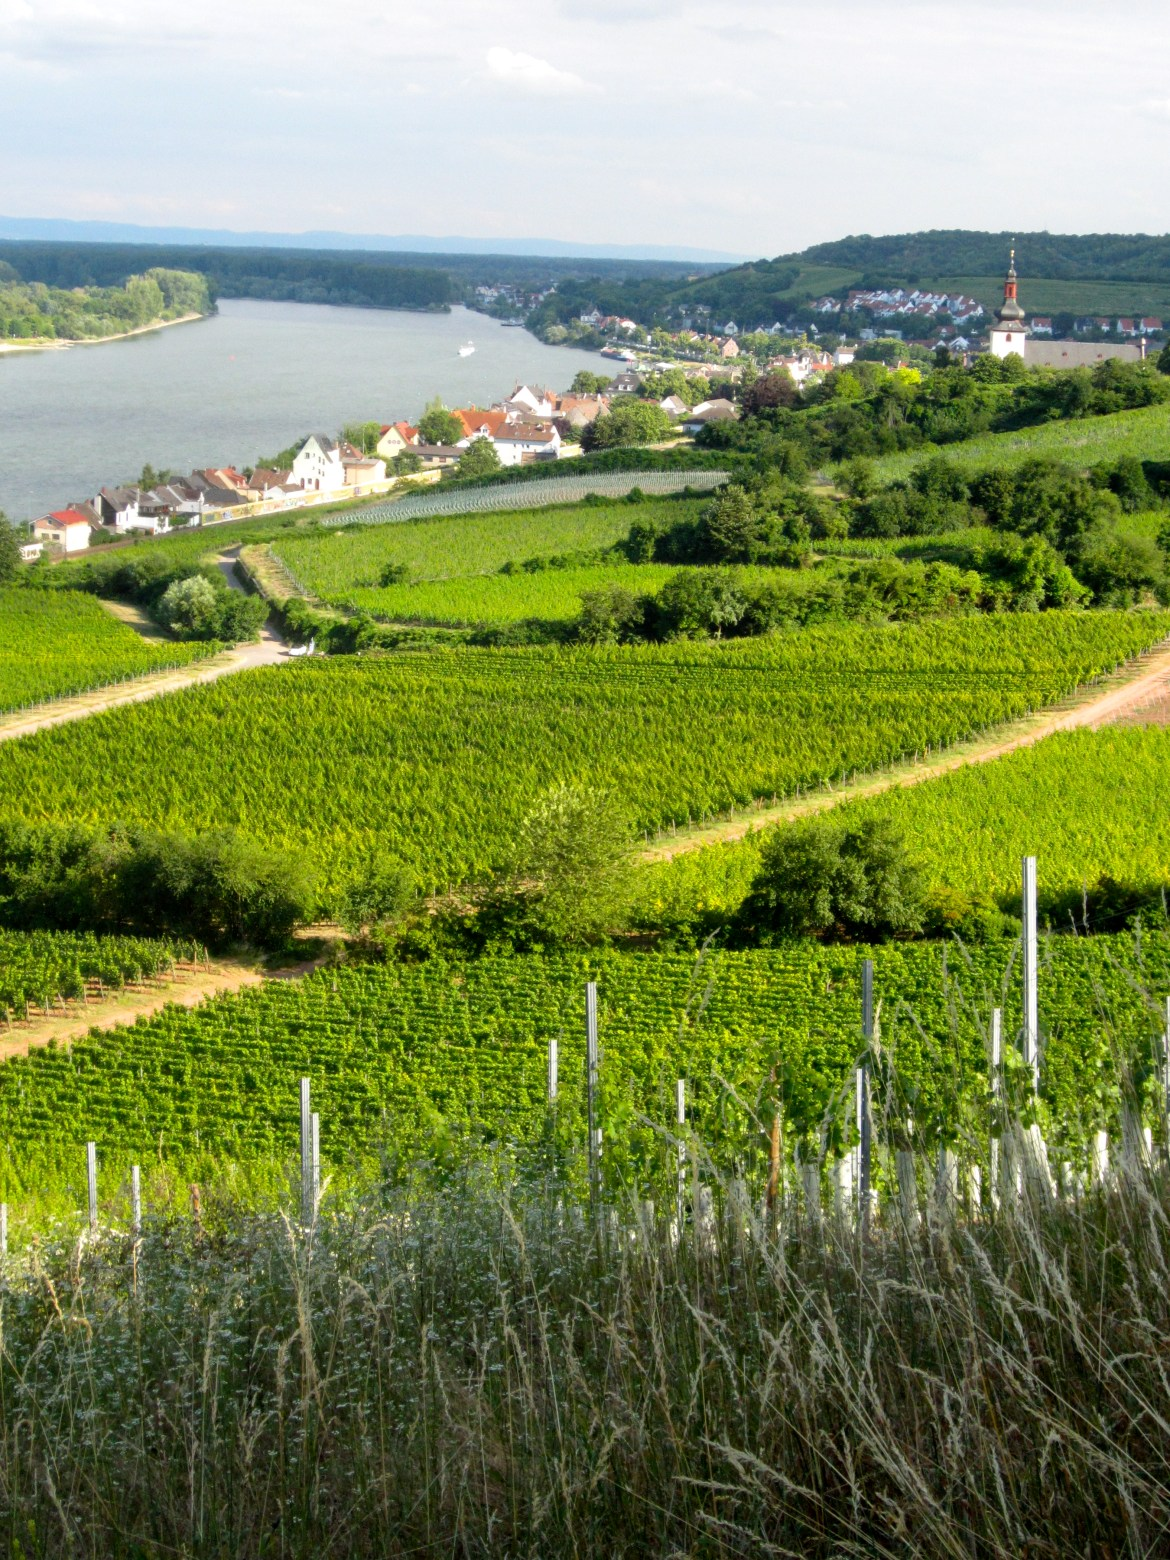 View of Nierstein am Rhein